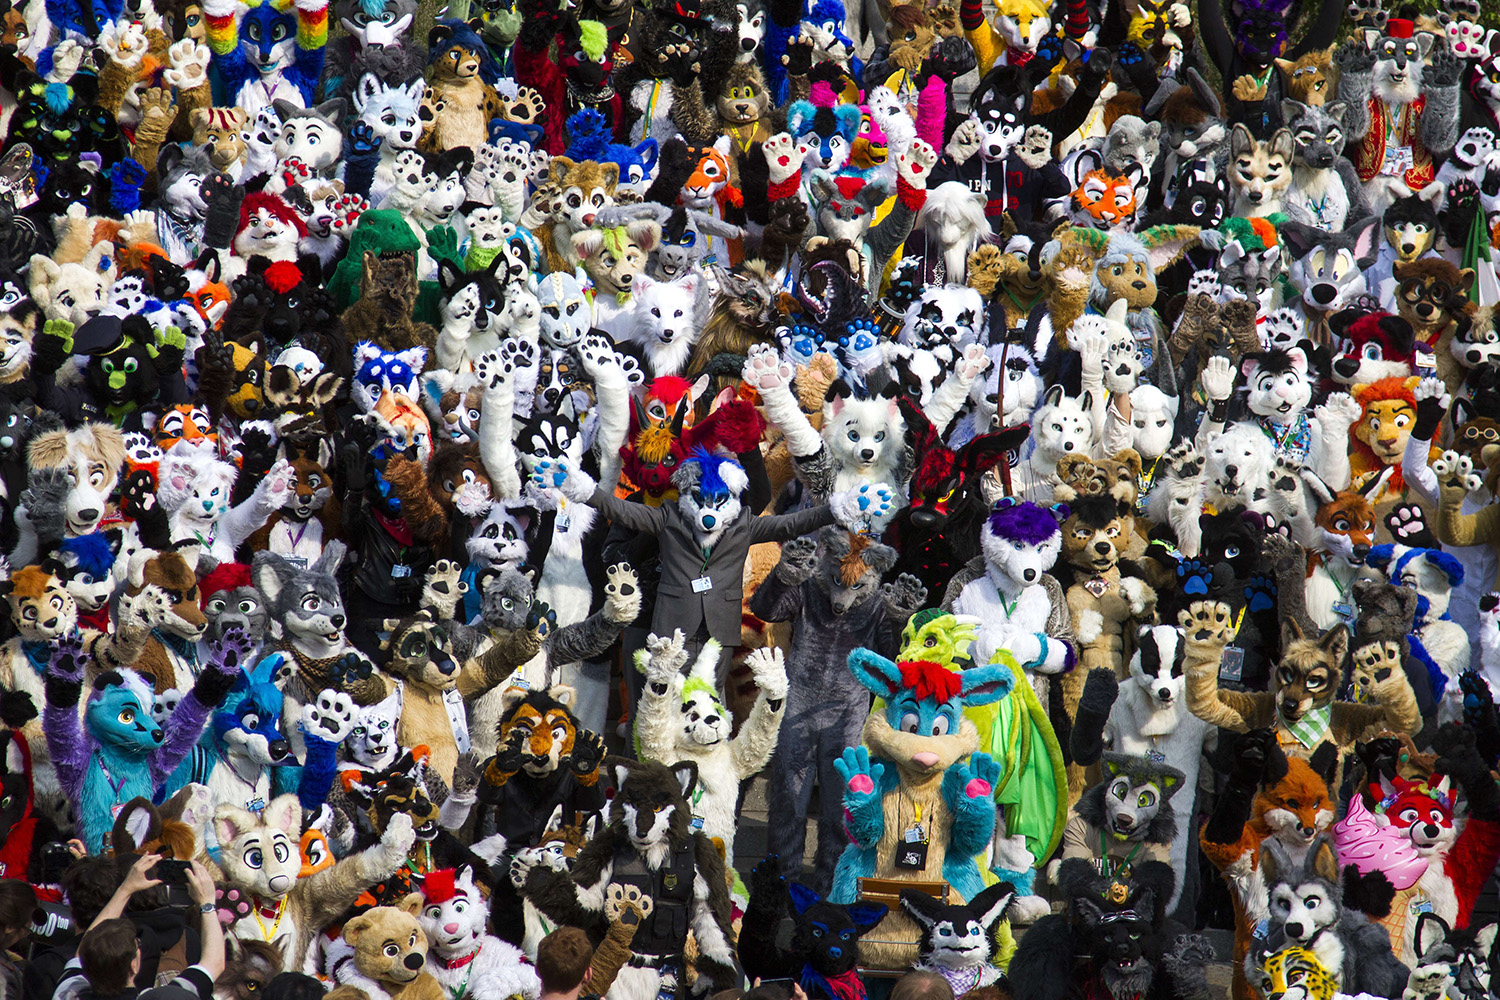 Delegates to the Eurofurence,  Europe's biggest furry convention  pose for a picture in front of the conference hotel in Berlin on August 21, 2014.